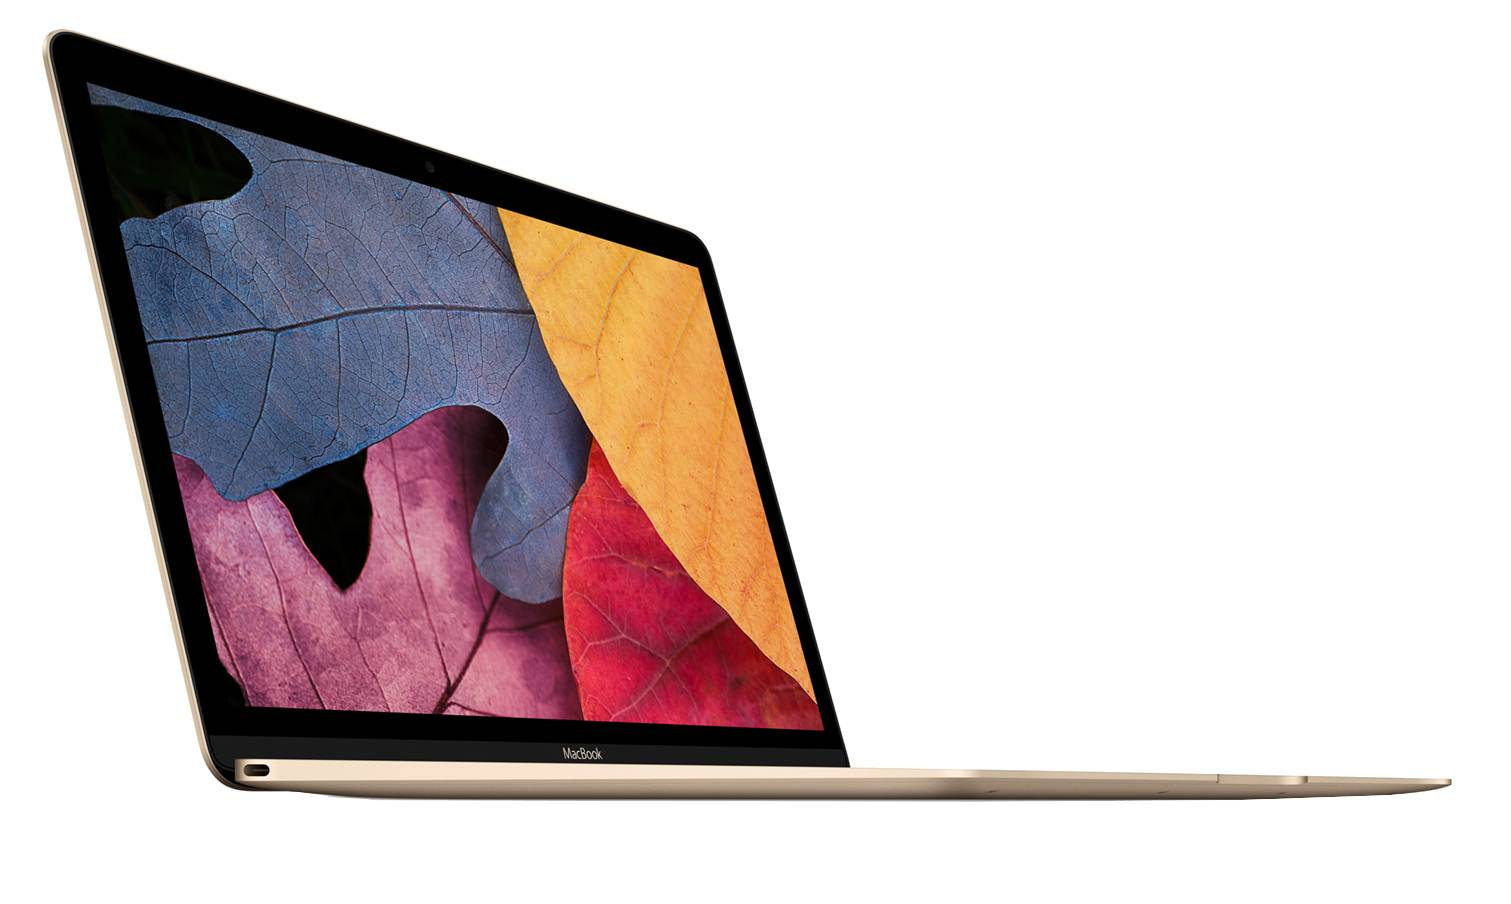 Refurbished Apple A Grade Macbook 12-inch (Retina, Gold) 1.1GHz Core m3 (Early 2016) MLHE2LL/A 256 GB SSD 8 GB Memory 2304x1440 Display Mac OS X v10.12 Sierra Power Adapter Included 1